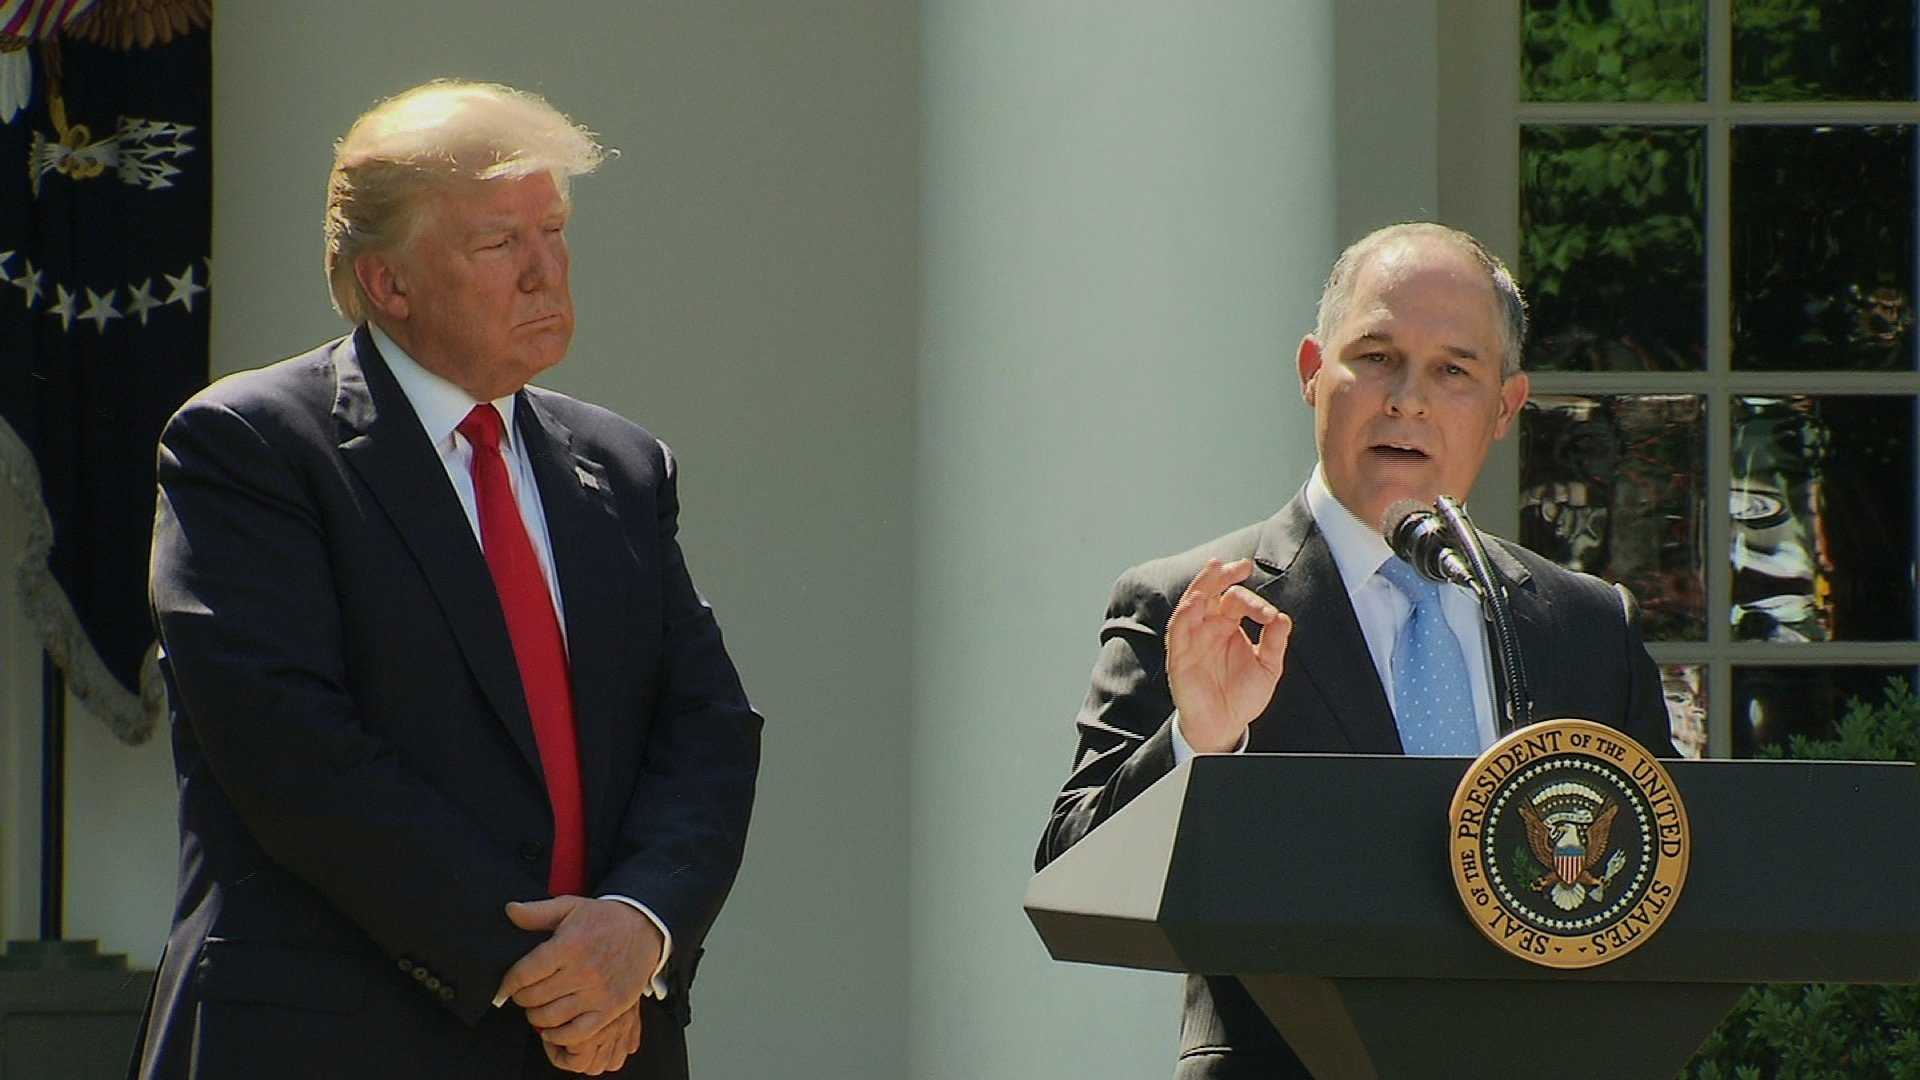 President Donald Trump and EPA Administrator Scott Pruitt at the White House.